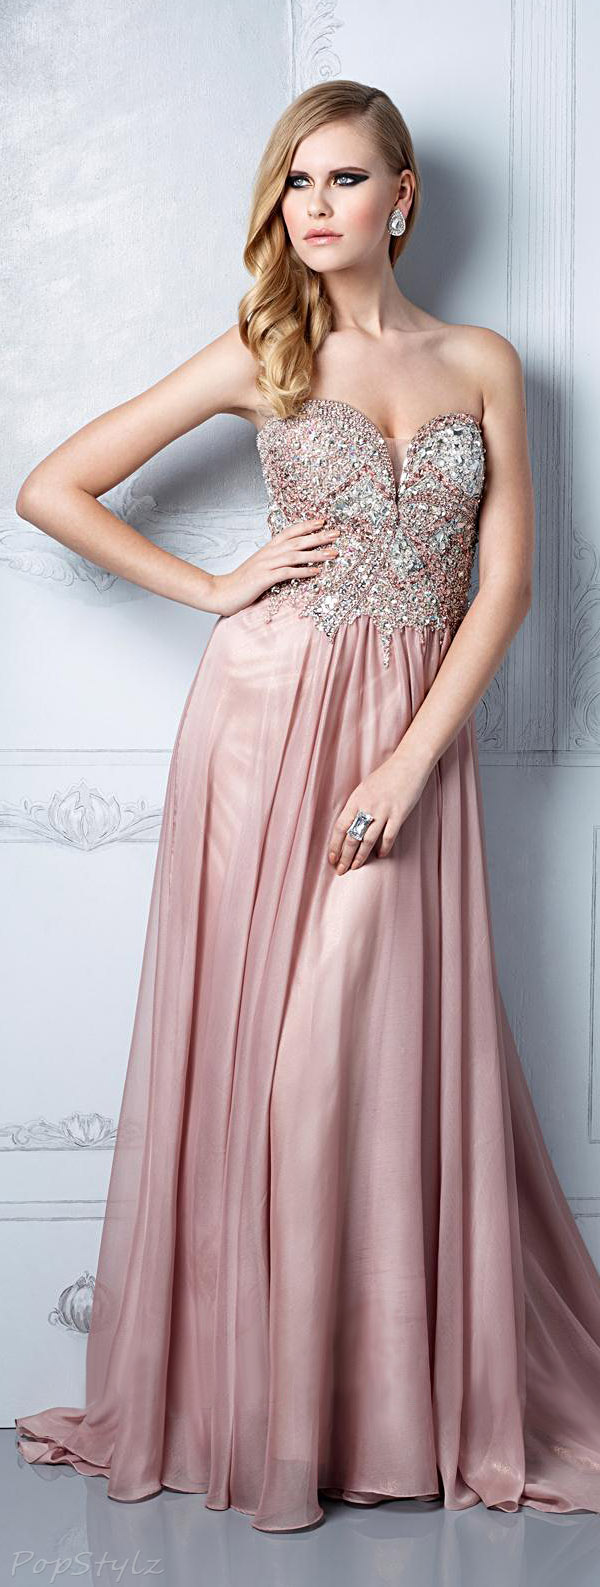 Terani Couture Gl2302 Sweetheart Strapless Embellished Bodice Evening Gown